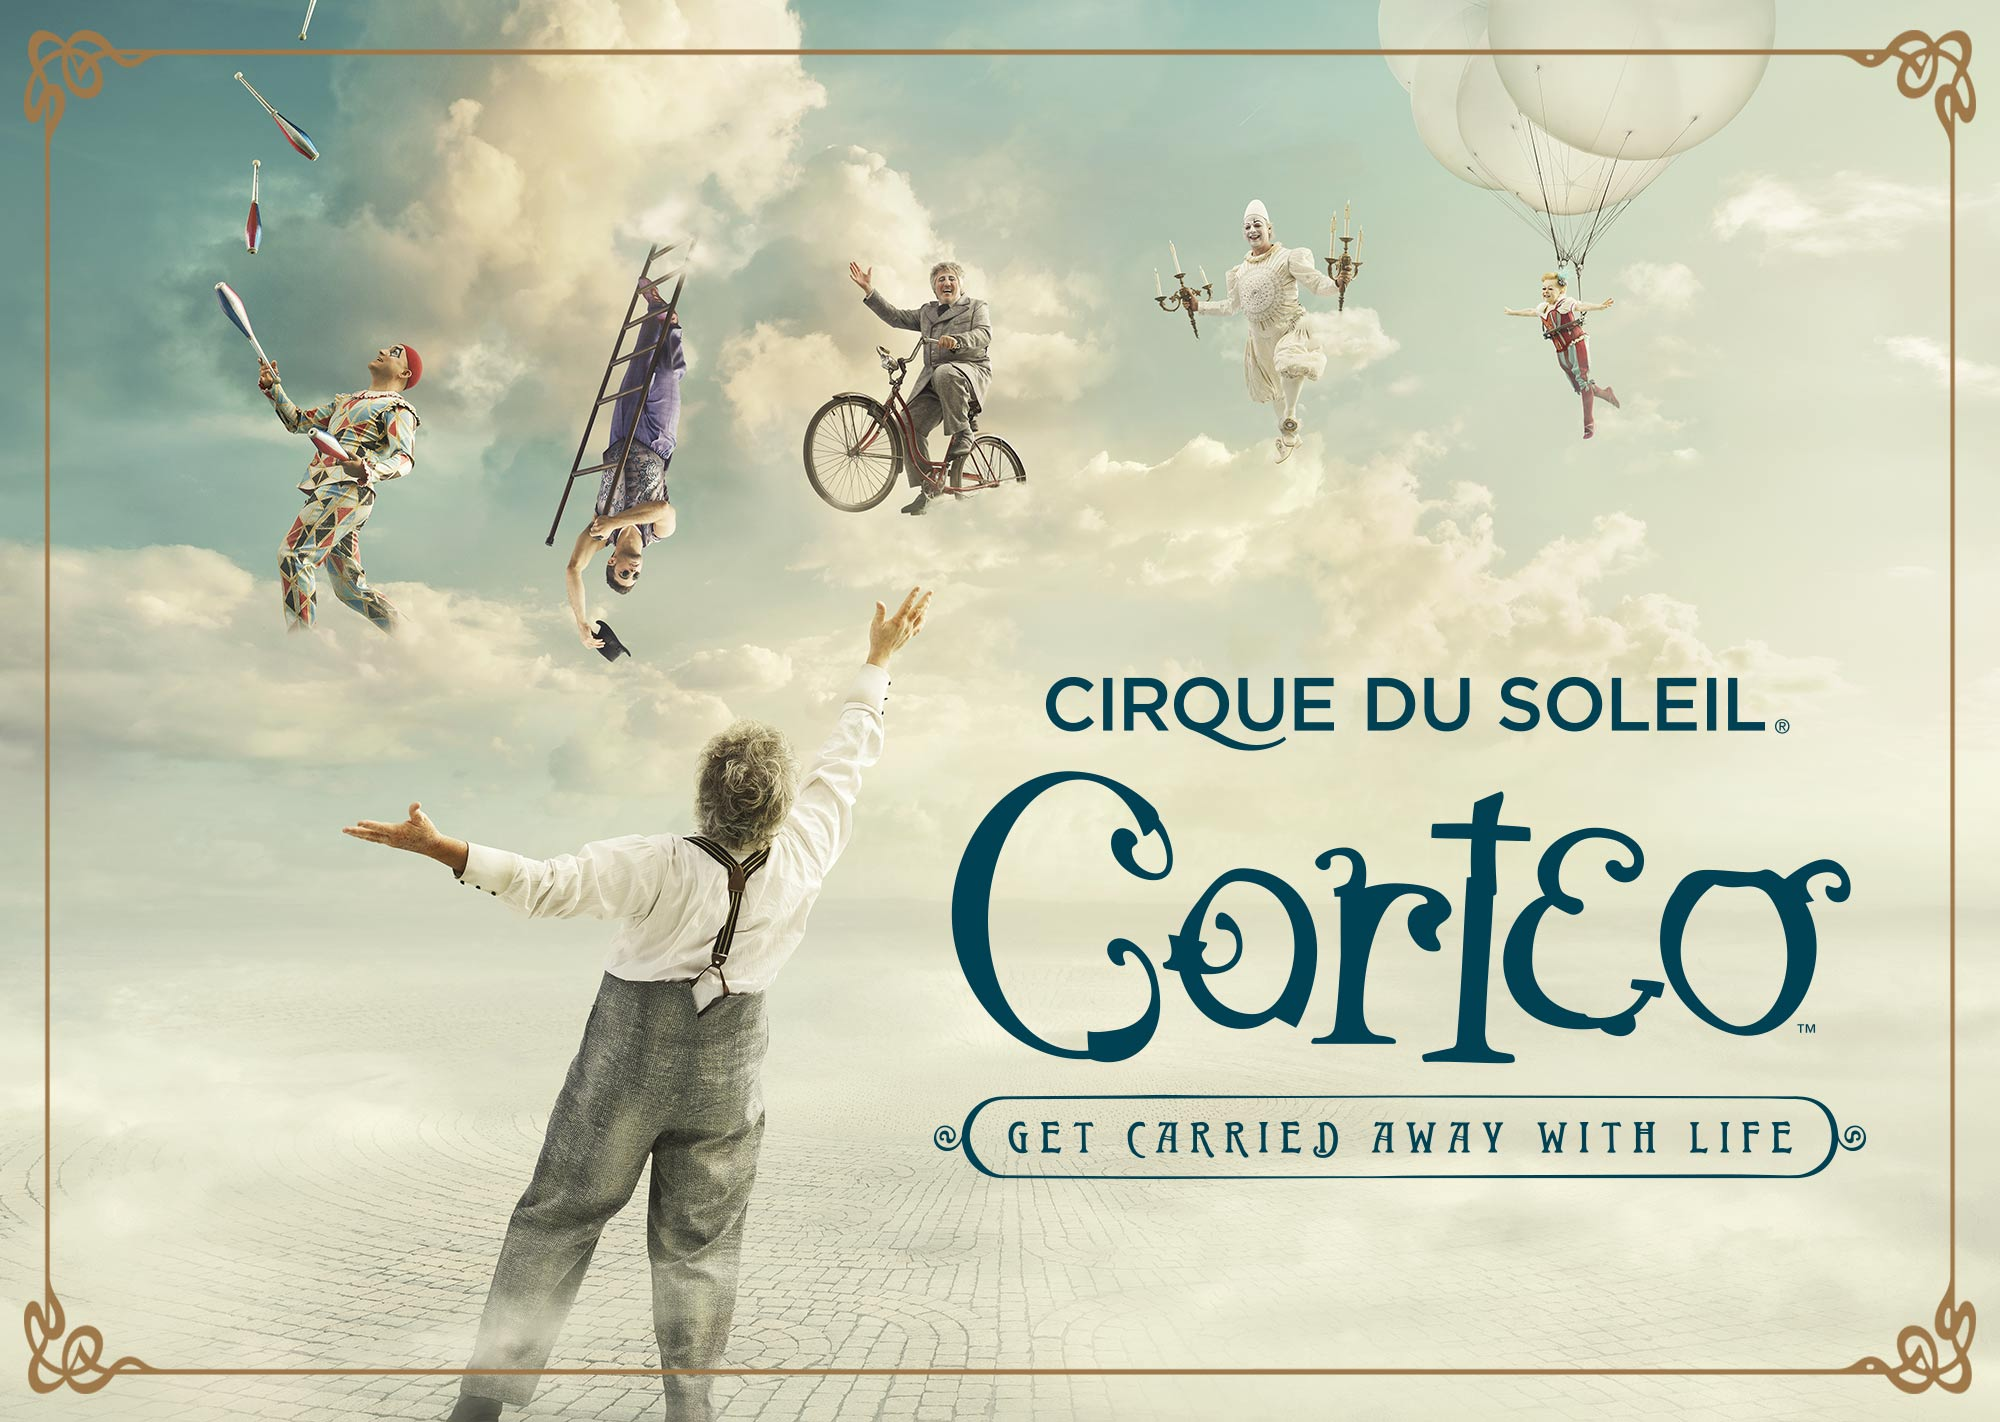 CORTEO, ONE OF THE BEST-LOVED CIRQUE DU SOLEIL PRODUCTIONS, IS COMING TO CEDAR PARK WITH ITS NORTH AMERICAN ARENA TOUR